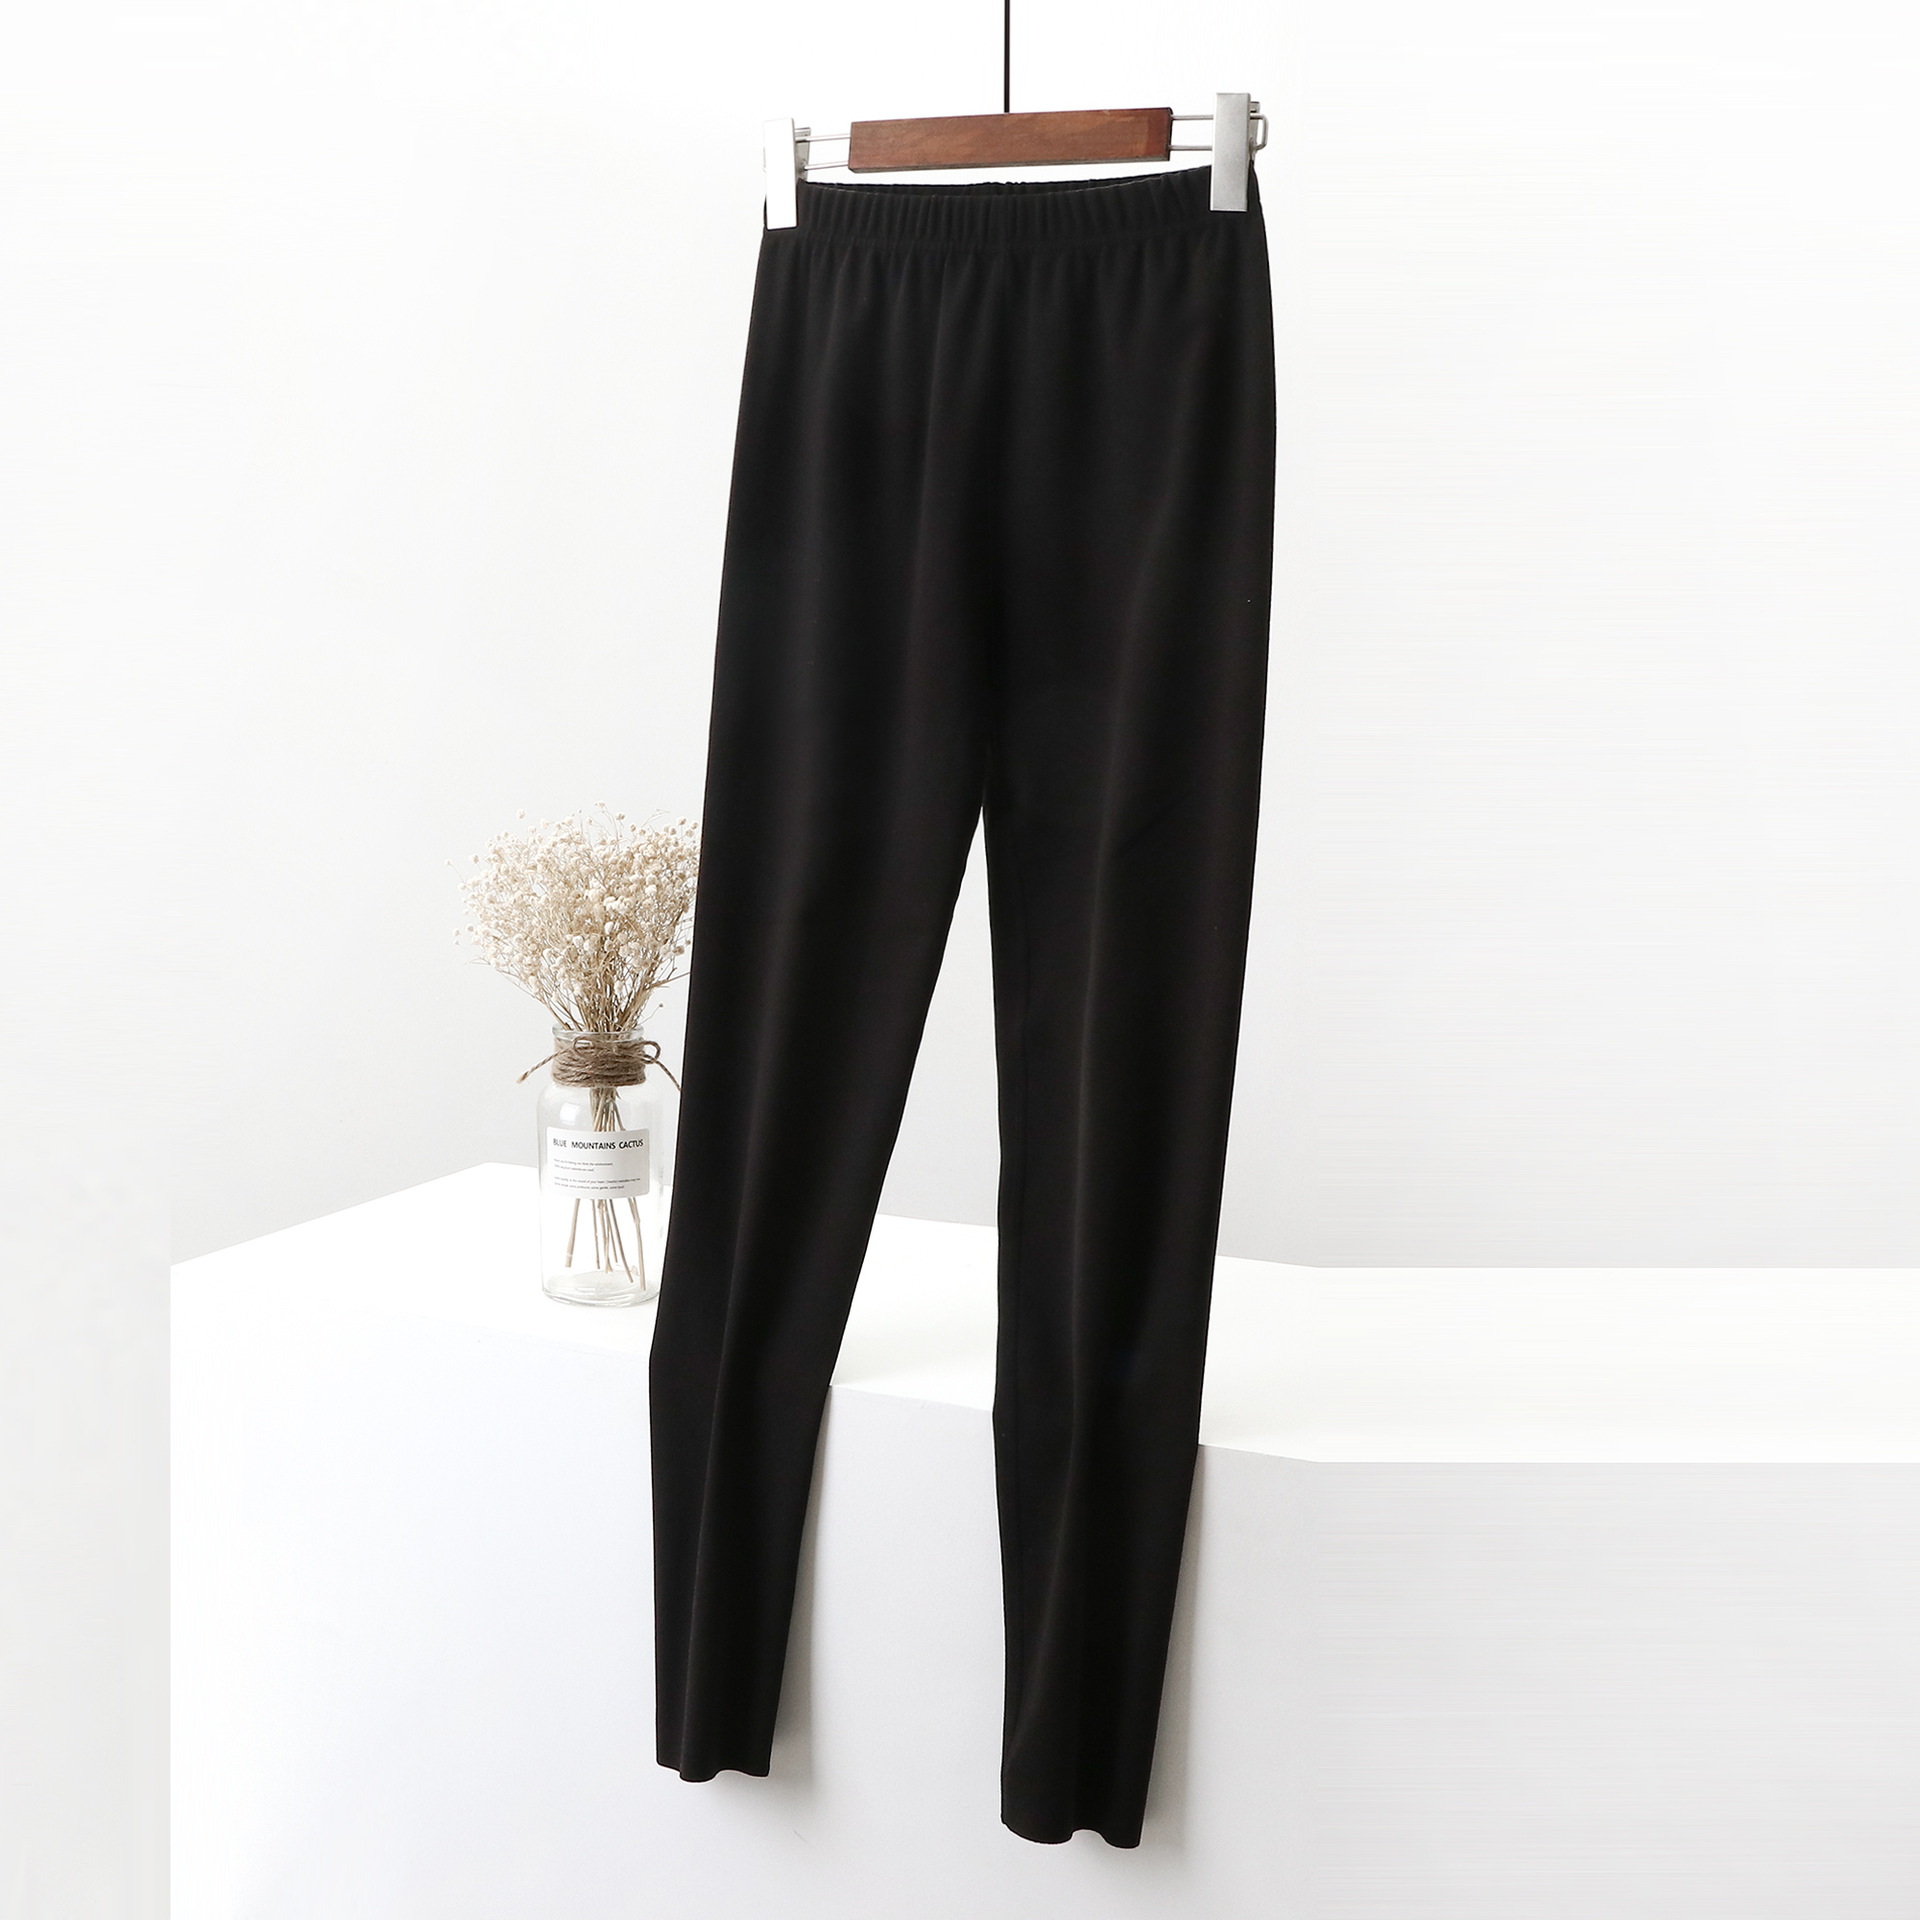 2020 New Fashion Ladies Casual Pants Exquisite Trend